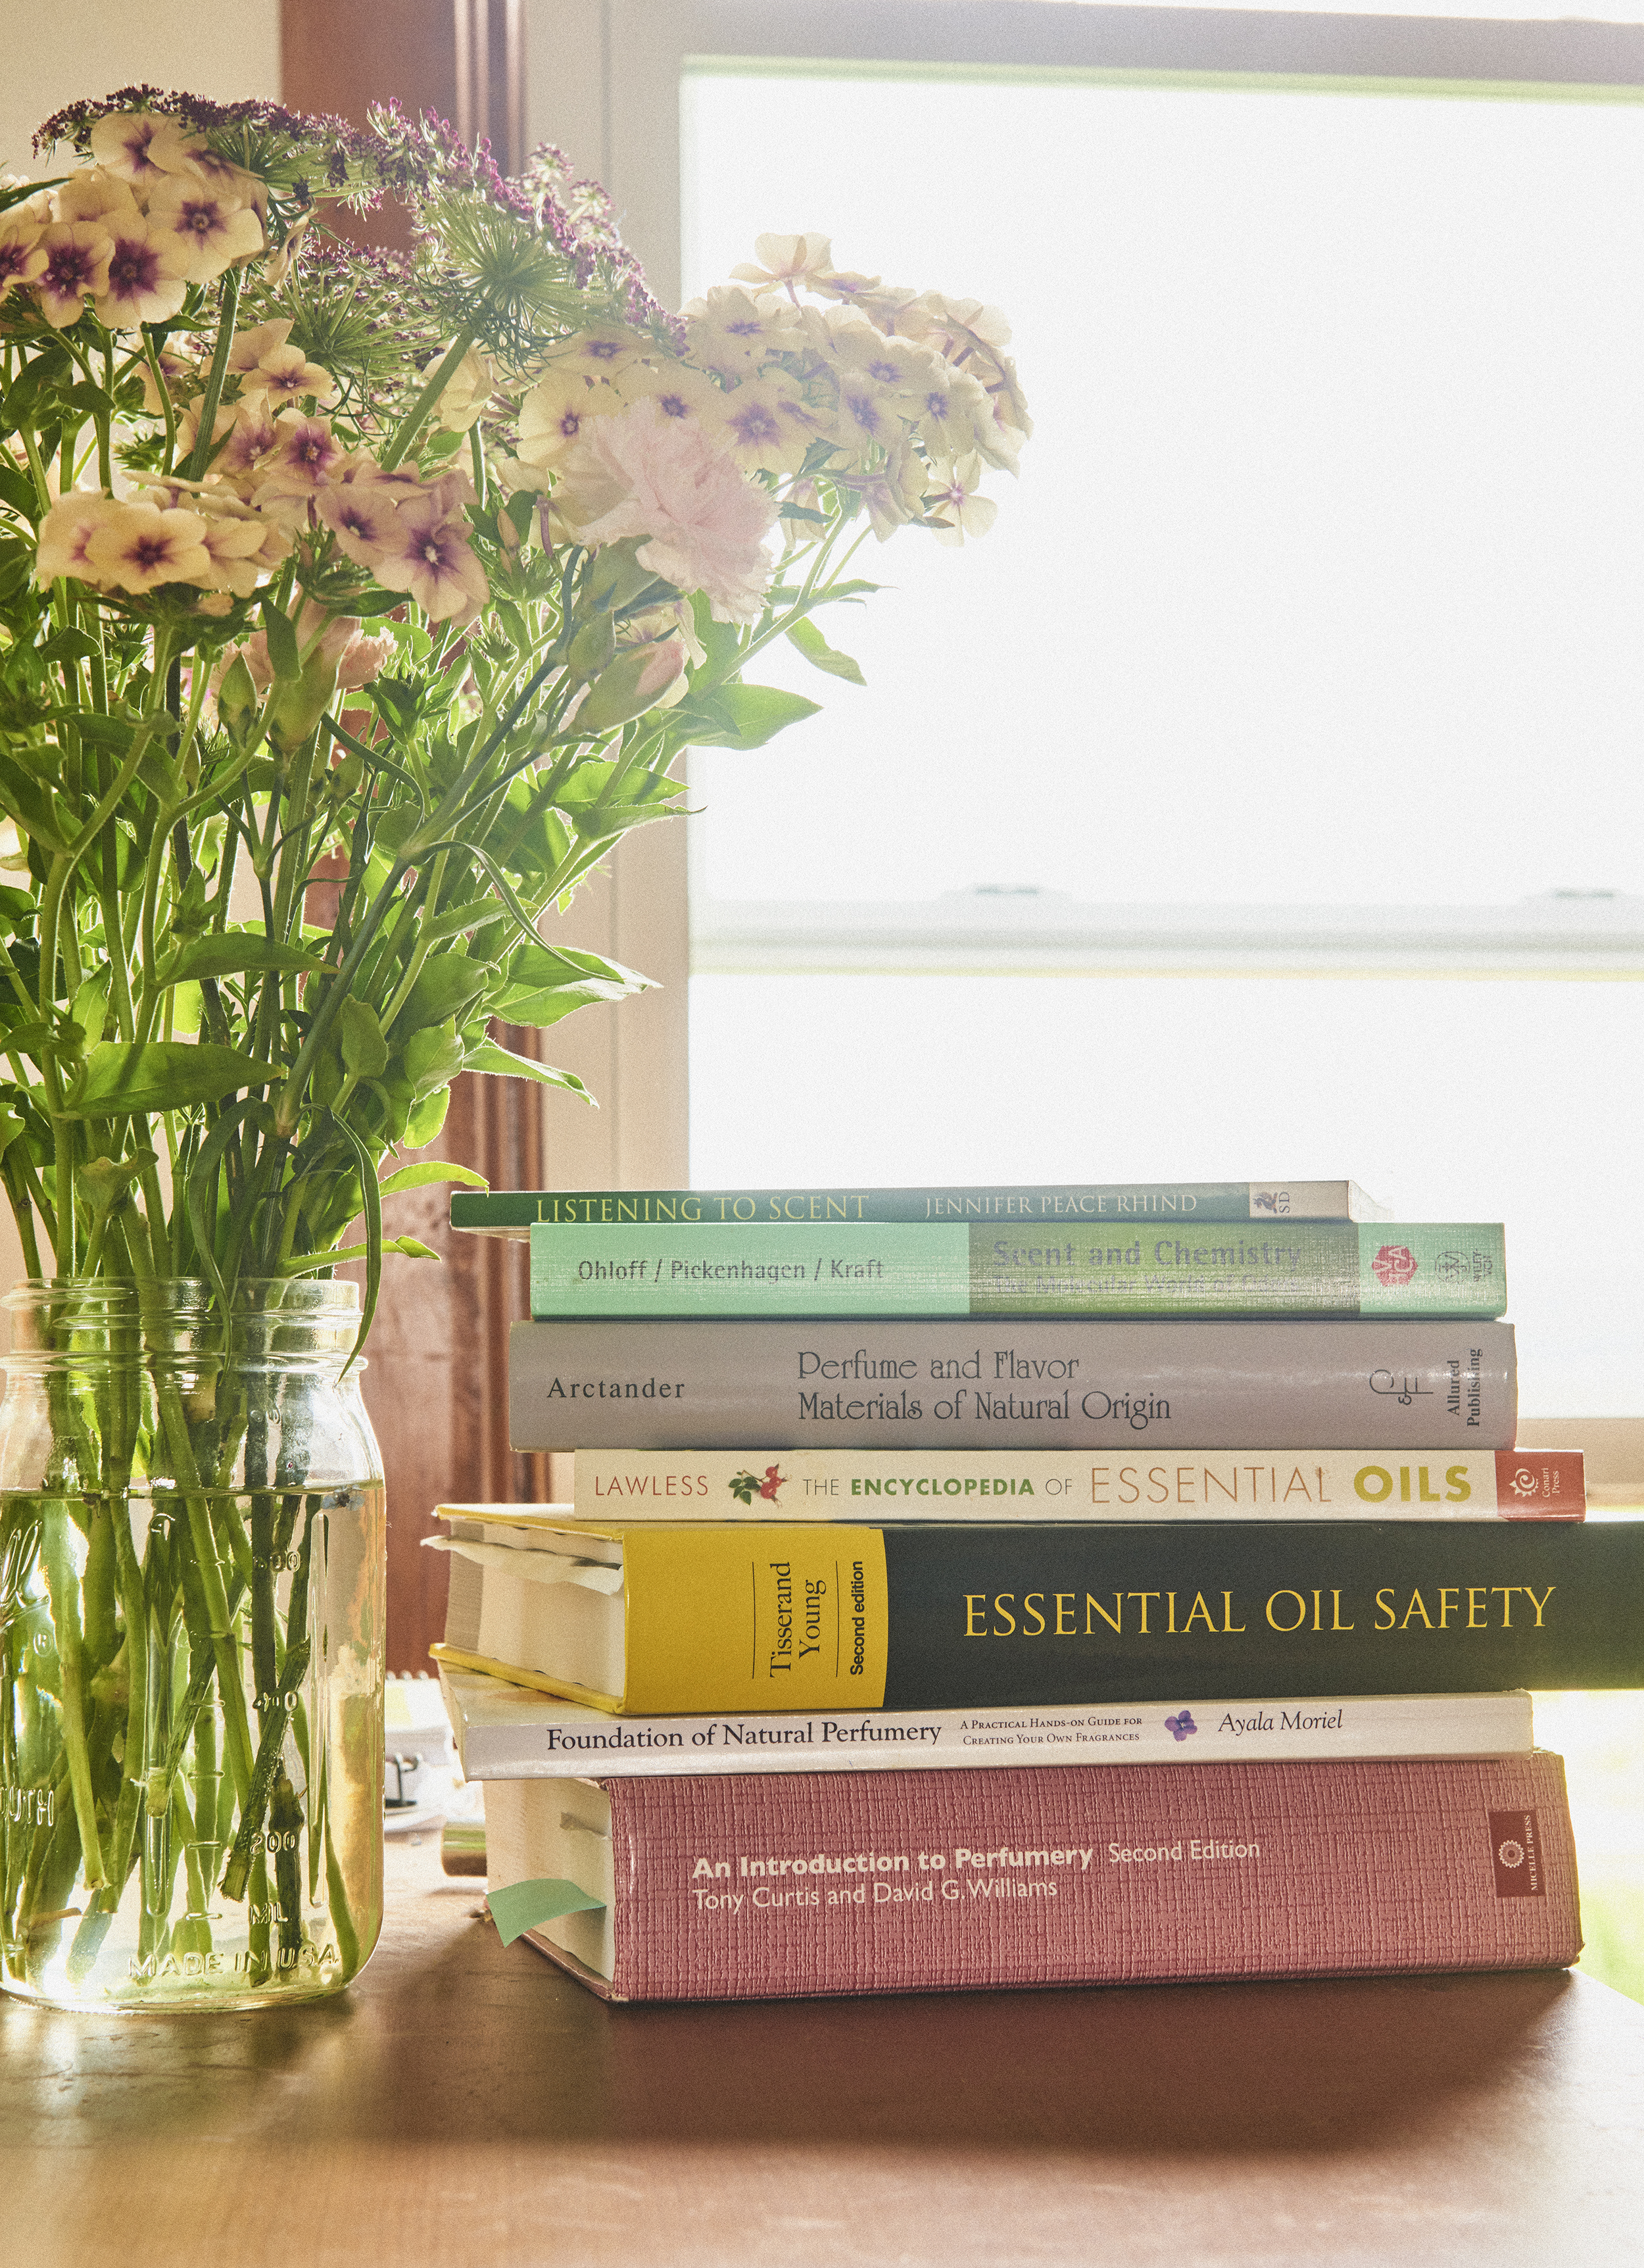 Perfume books and flowers sitting on a desk